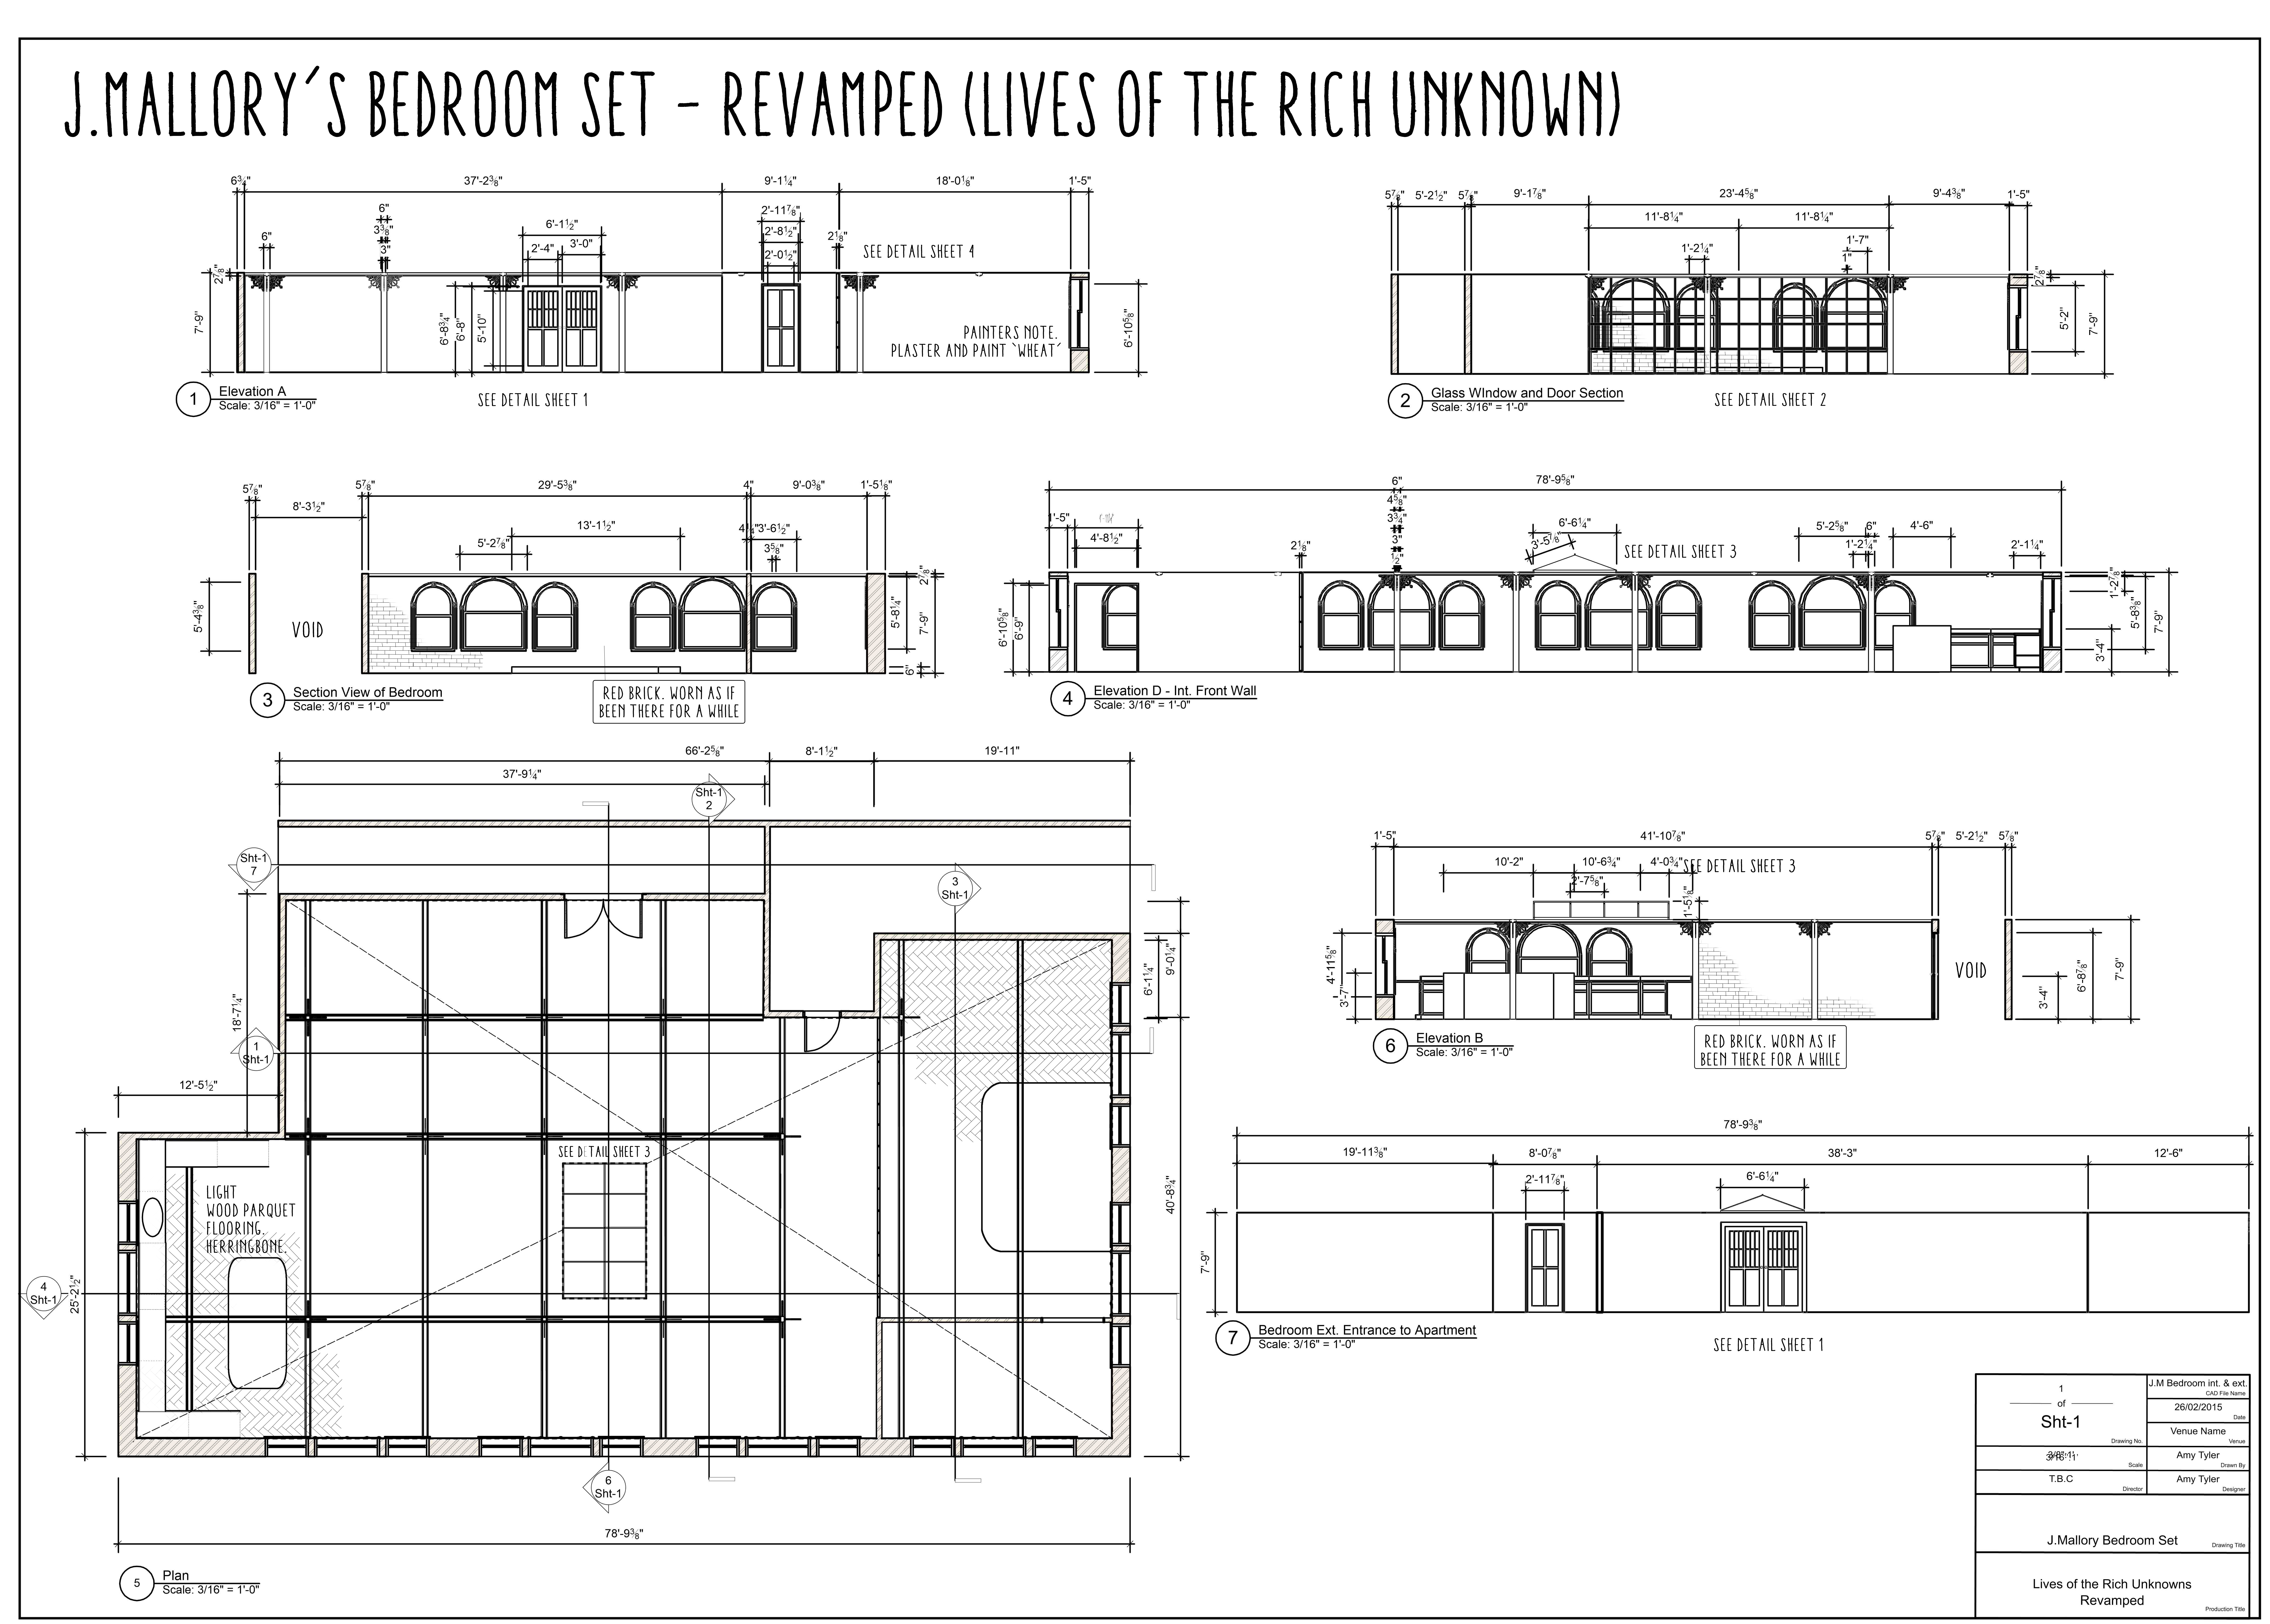 James Mallory's Bedroom Elevations